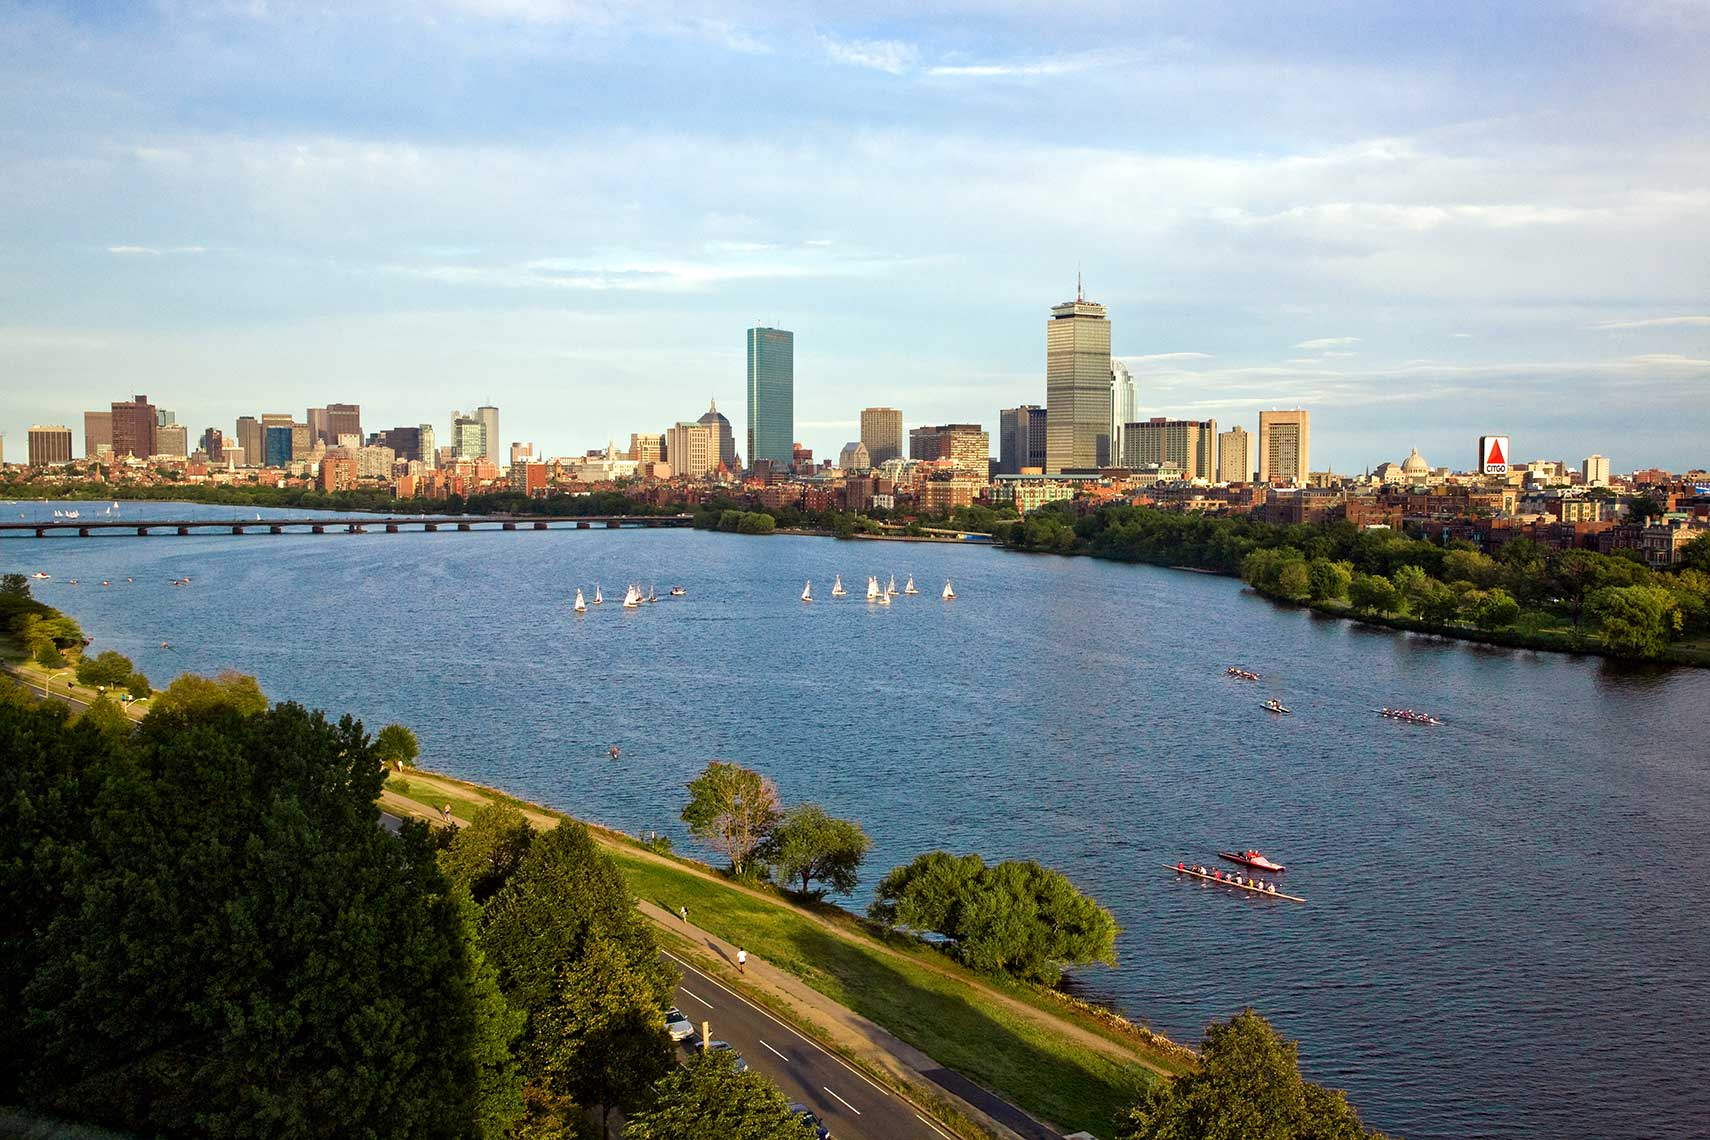 Wide View of the Charles River from Cambridge towards Boston